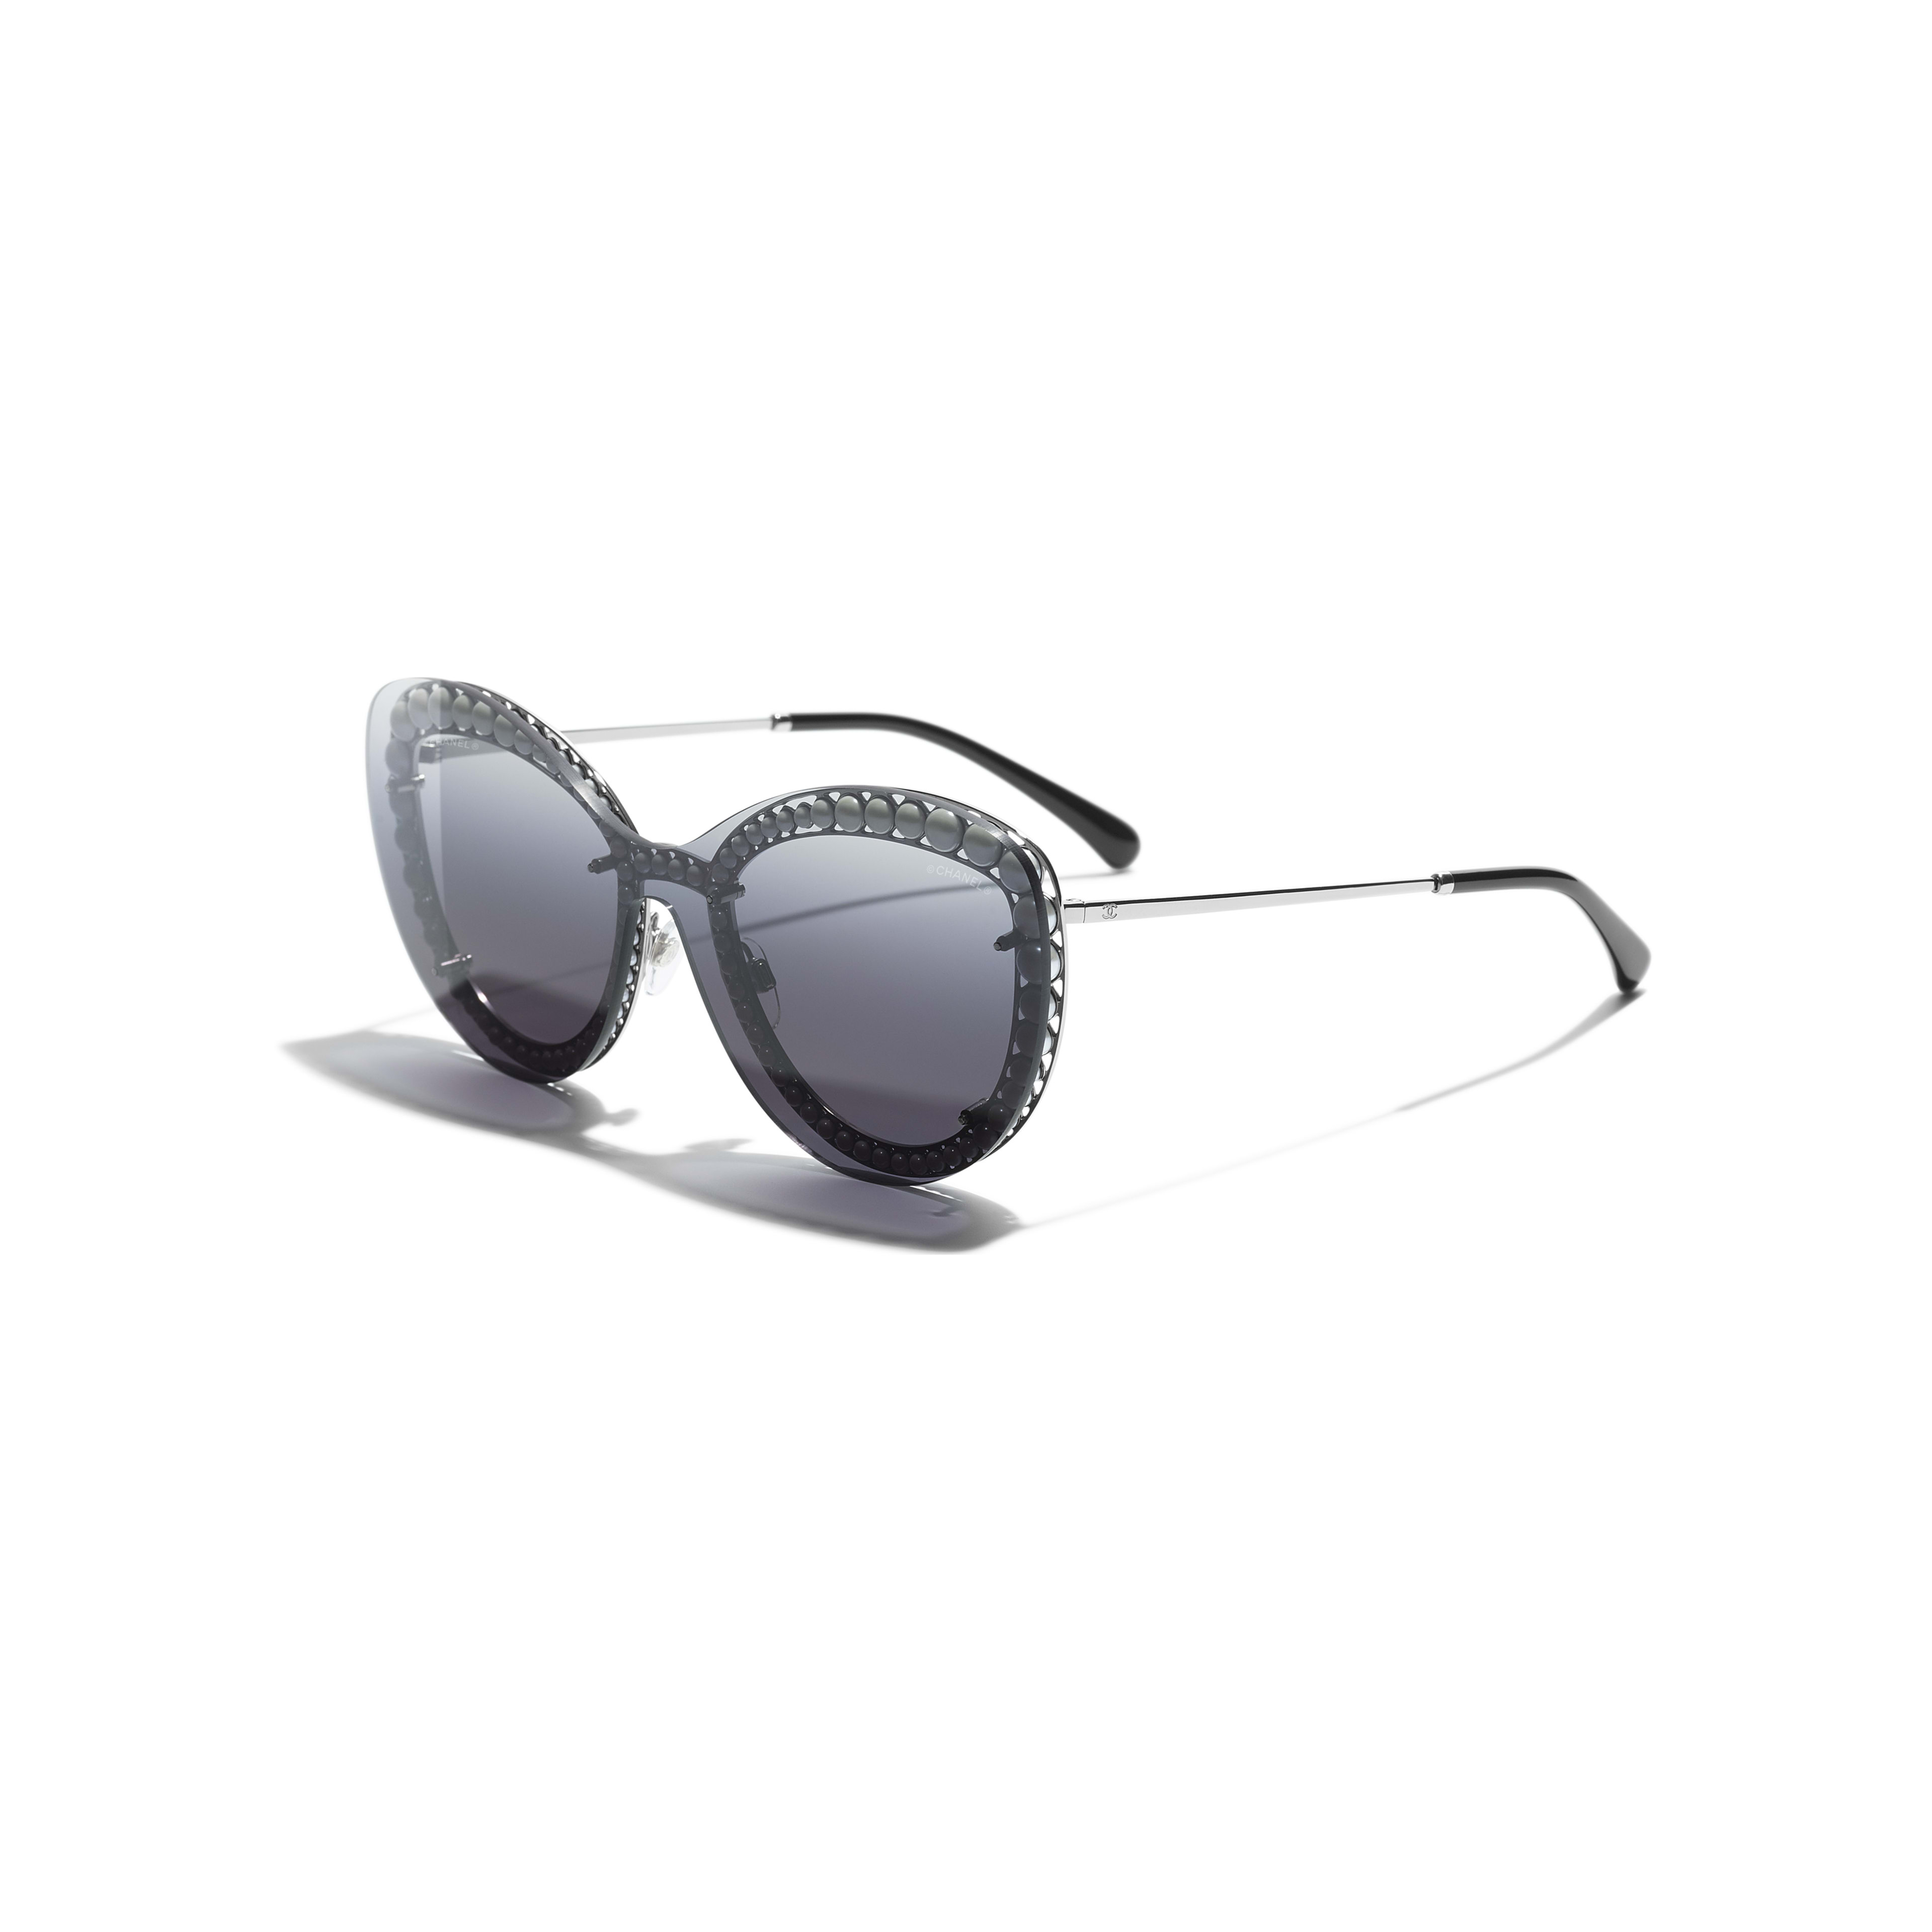 Butterfly Sunglasses - Silver - Metal & Imitation Pearls - Extra view - see full sized version